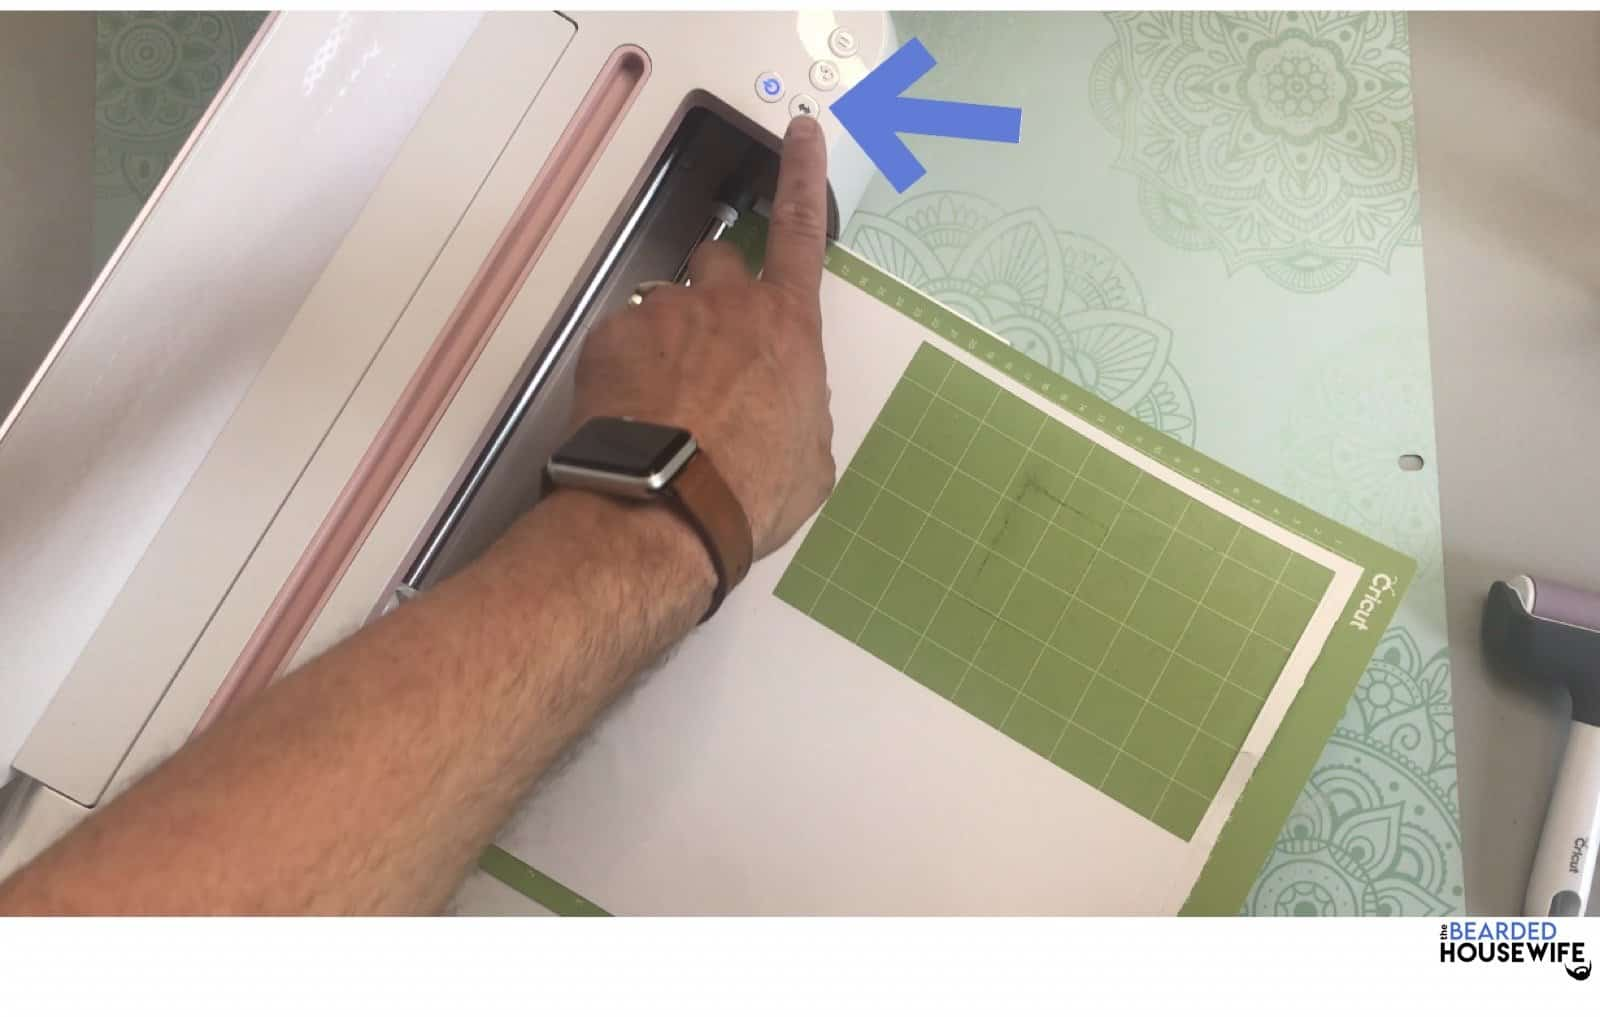 load your mat by pressing the flashing arrows